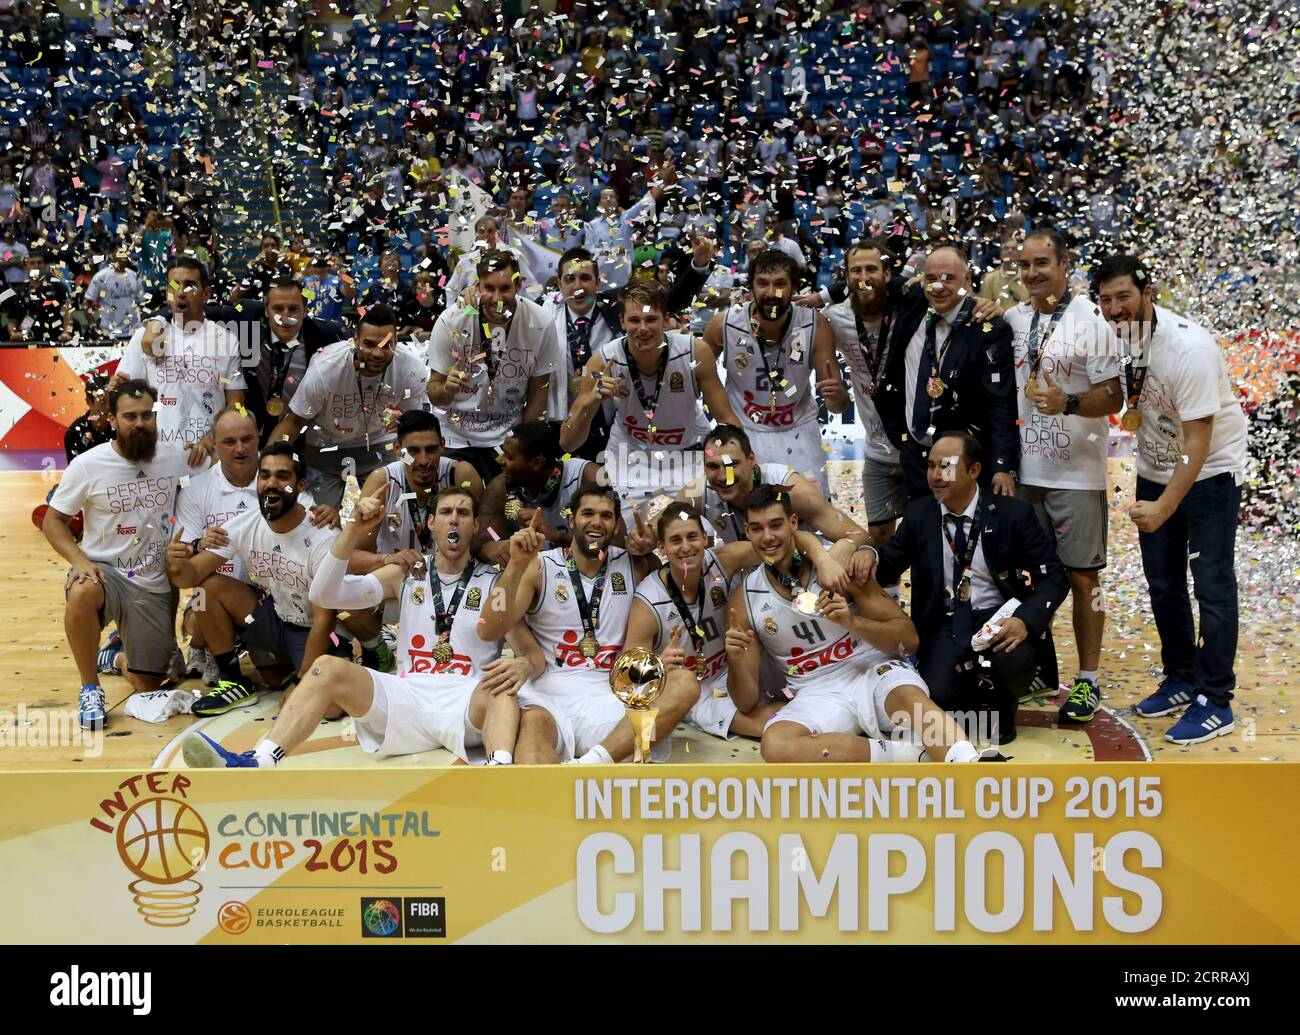 Intercontinental Cup High Resolution Stock Photography and Images ...